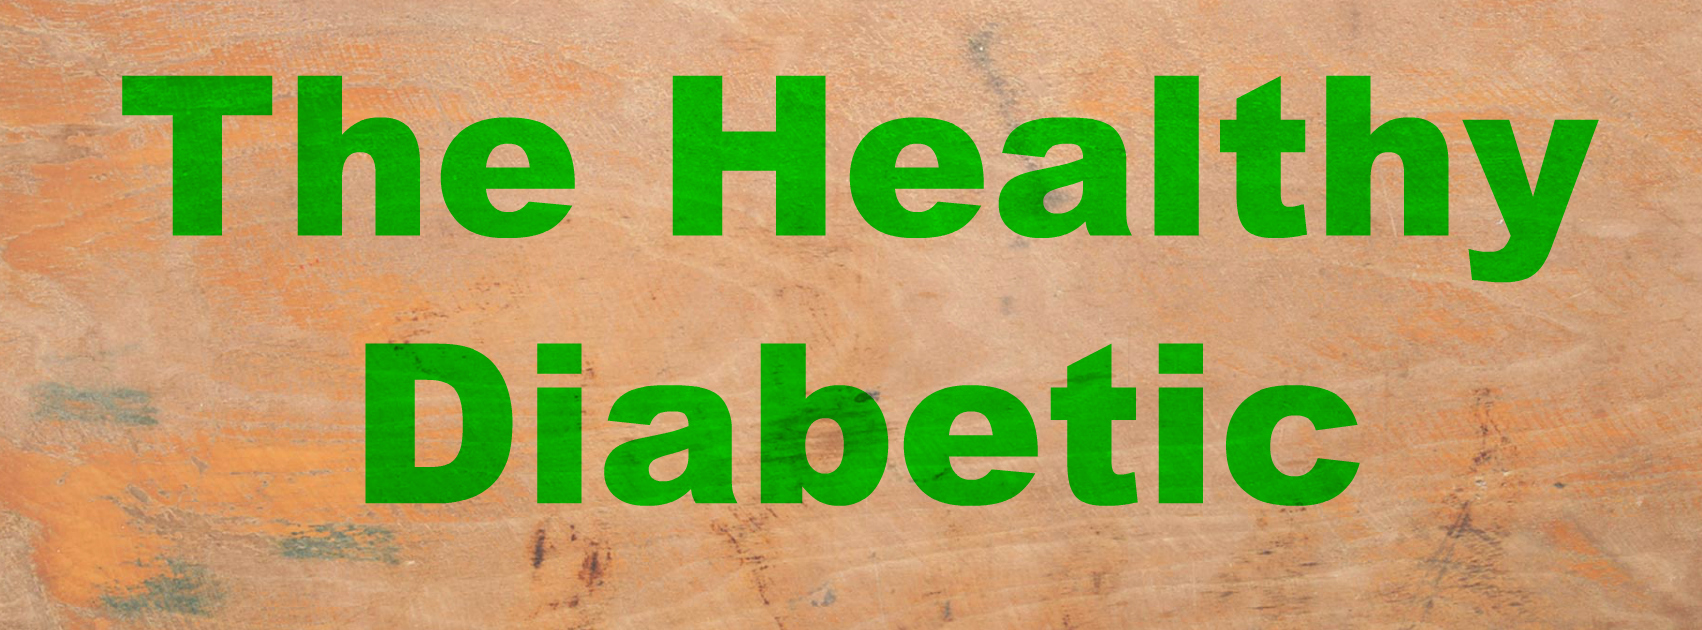 Helping Diabetics Live Their Healthiest!